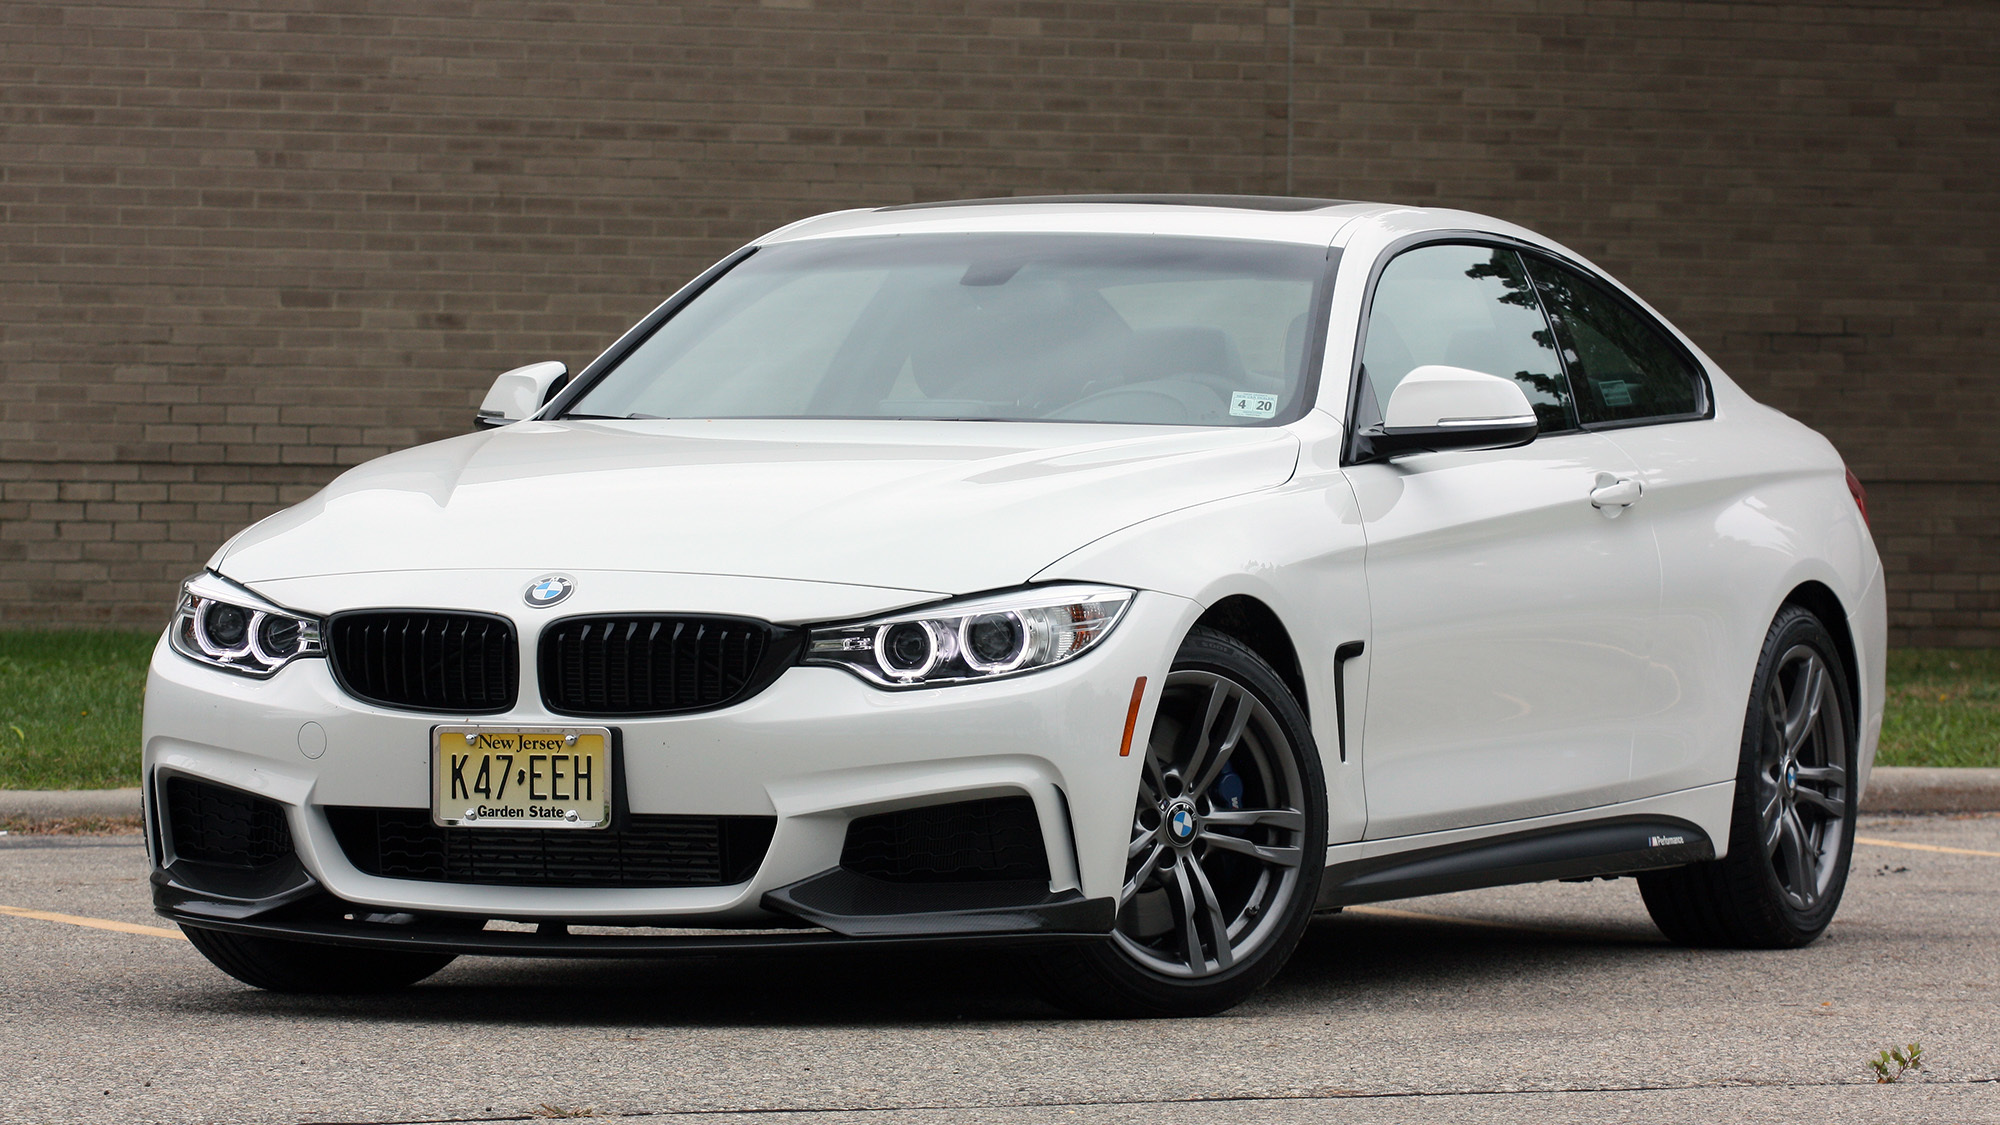 2016 Bmw 435i Zhp Edition Coupe Quick Spin W Video